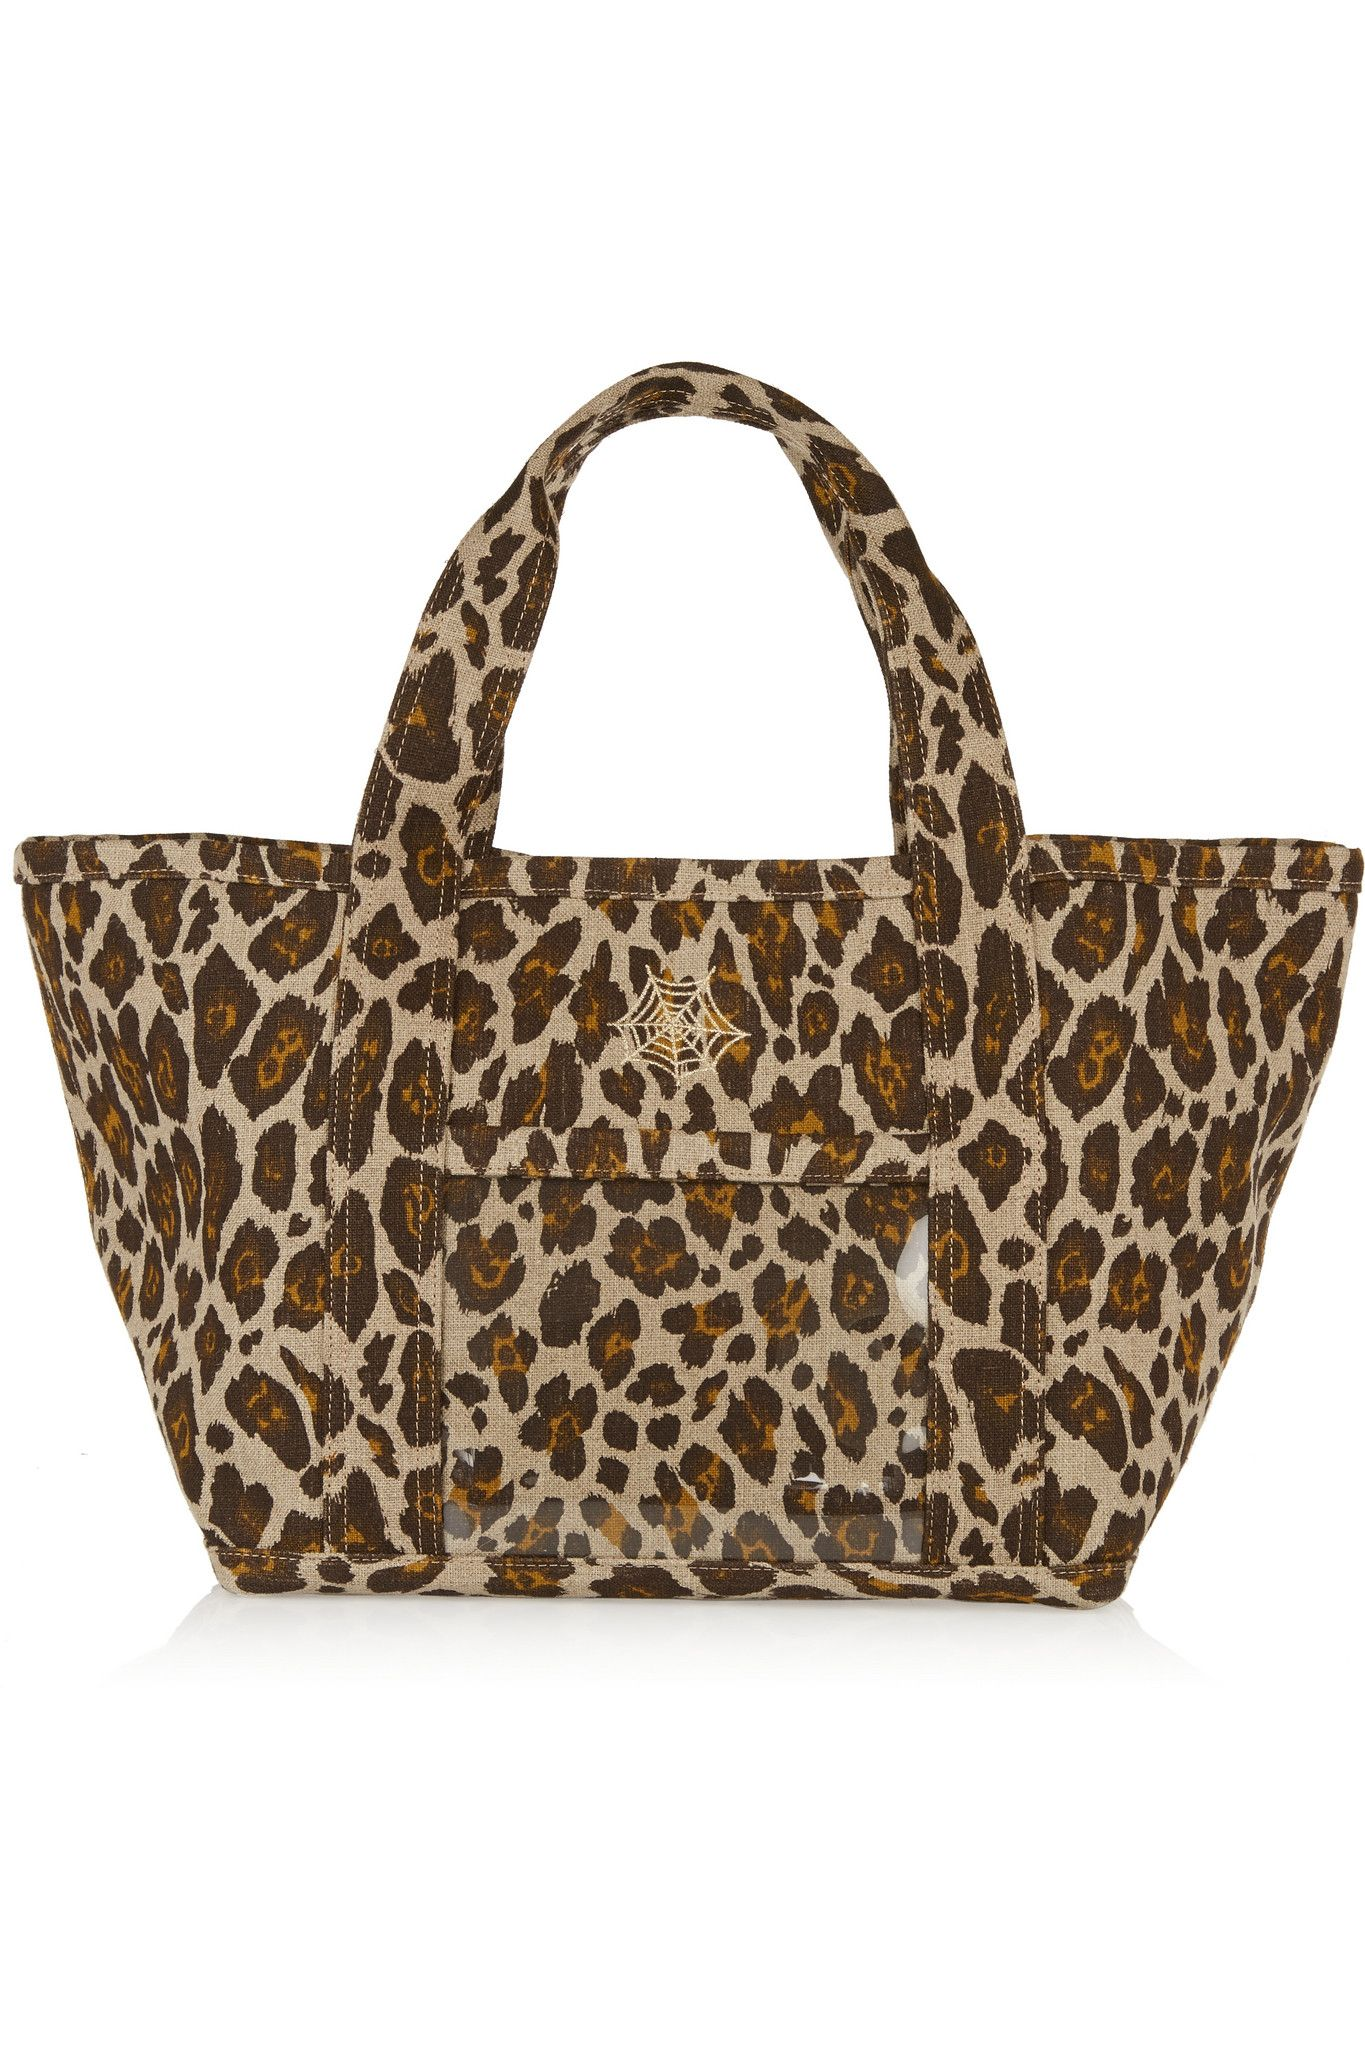 CHARLOTTE OLYMPIA Ami leopard-print canvas tote €625.00 http://www.net-a-porter.com/products/503751